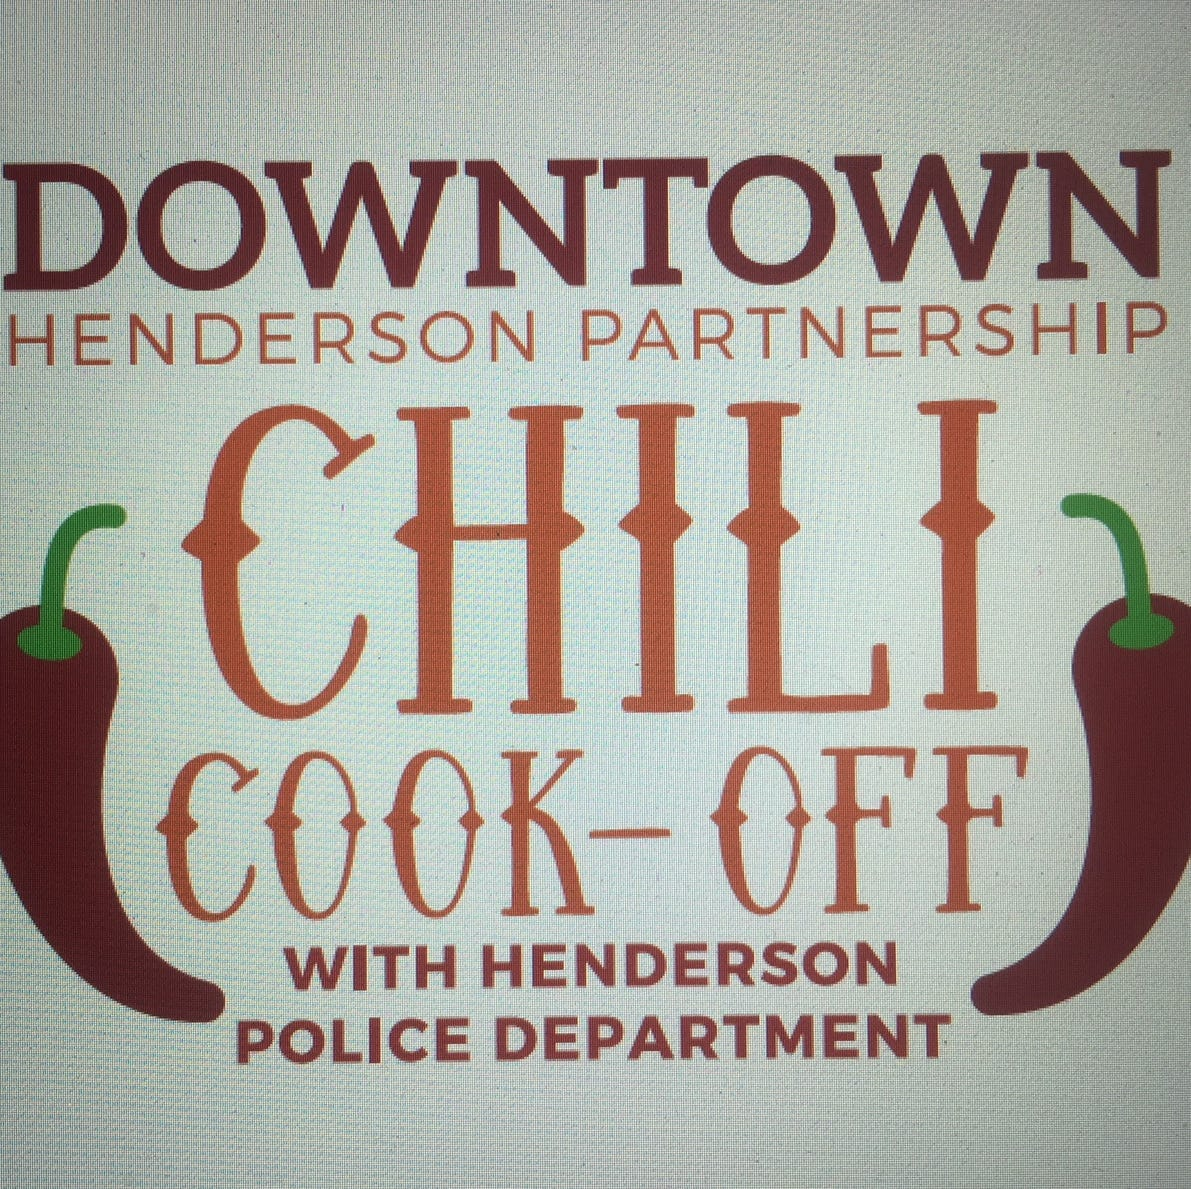 8 fun things to do in Henderson this weekend